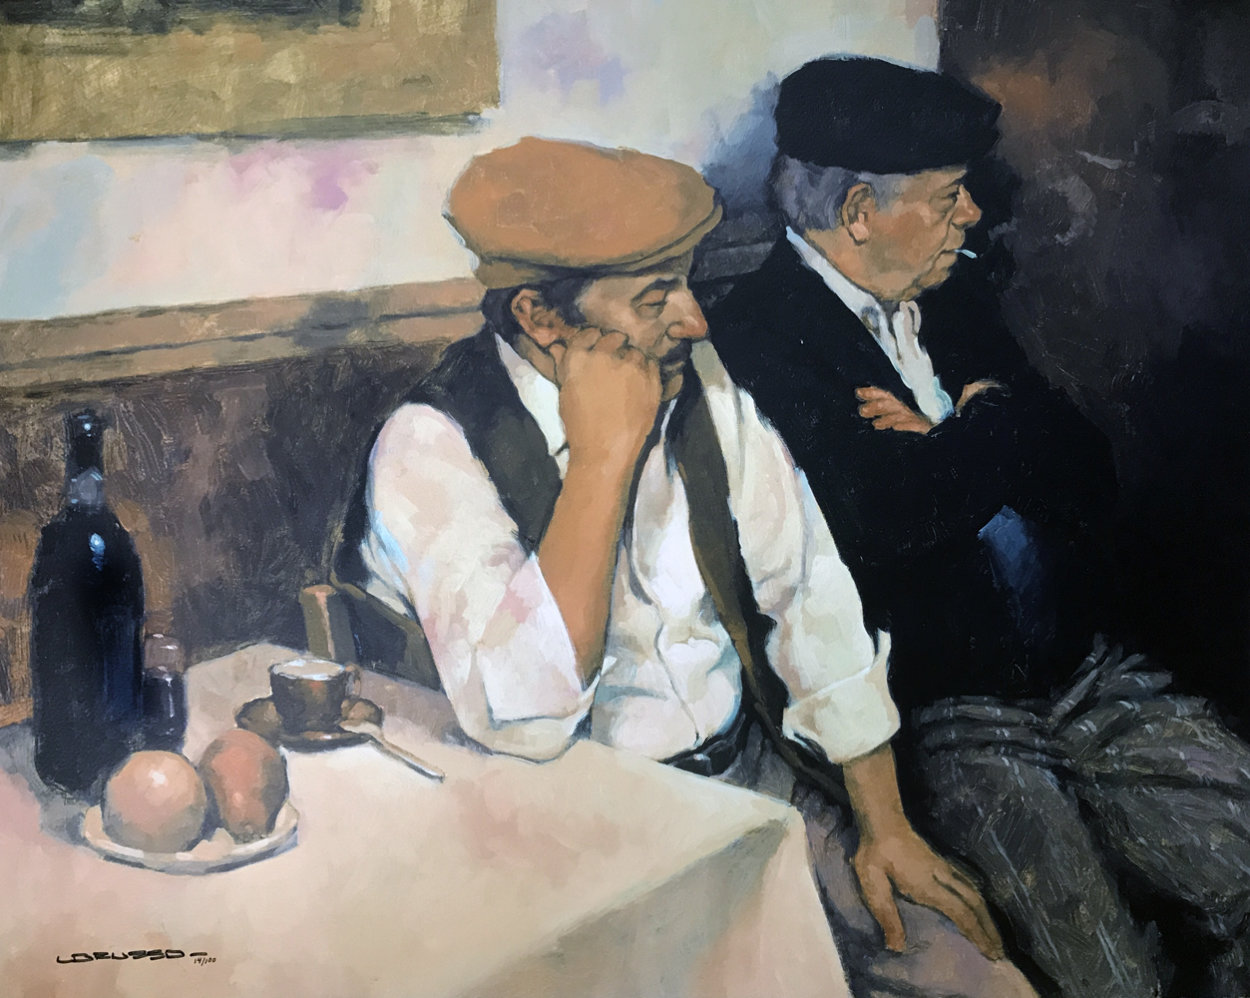 Italian Brothers Limited Edition Print by Joseph Lorusso